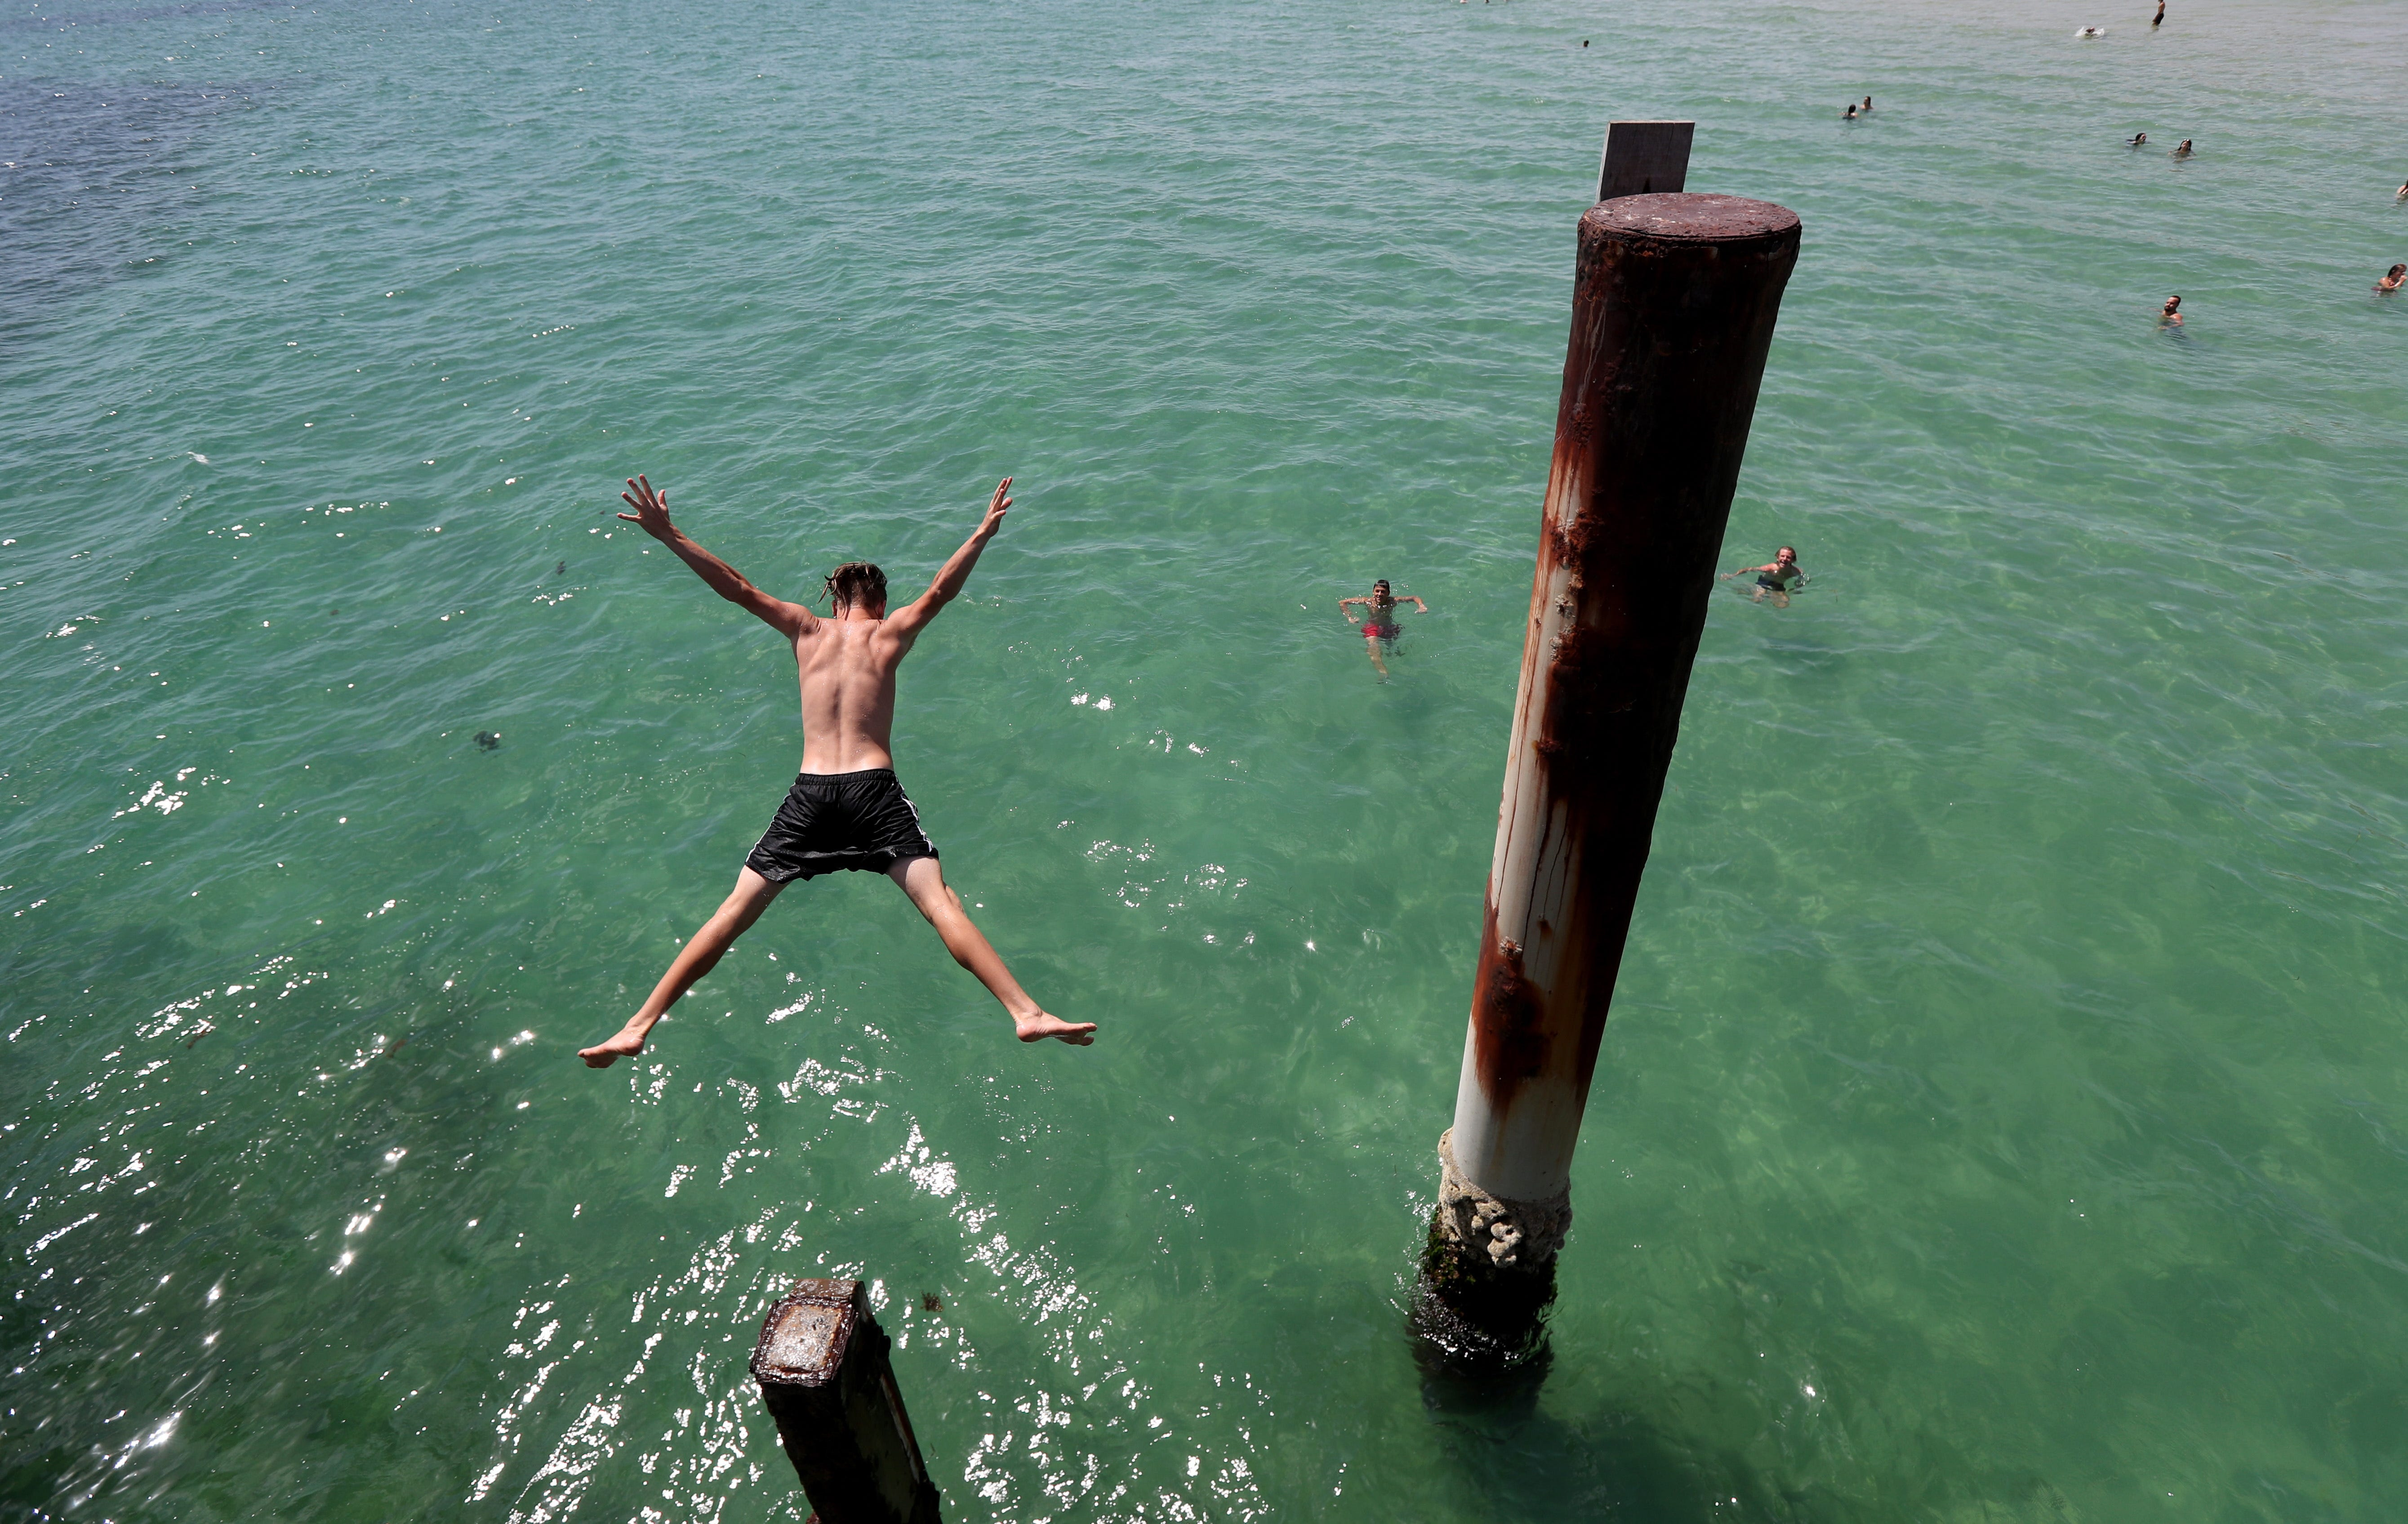 Teens jump of the jetty at Glenelg beach during a hot day in Adelaide, South Australia, Australia on Jan. 22, 2019. According to weather forecast, hot and dry weather will affect South Australia with winds reaching 30-40 kph during the daytime.